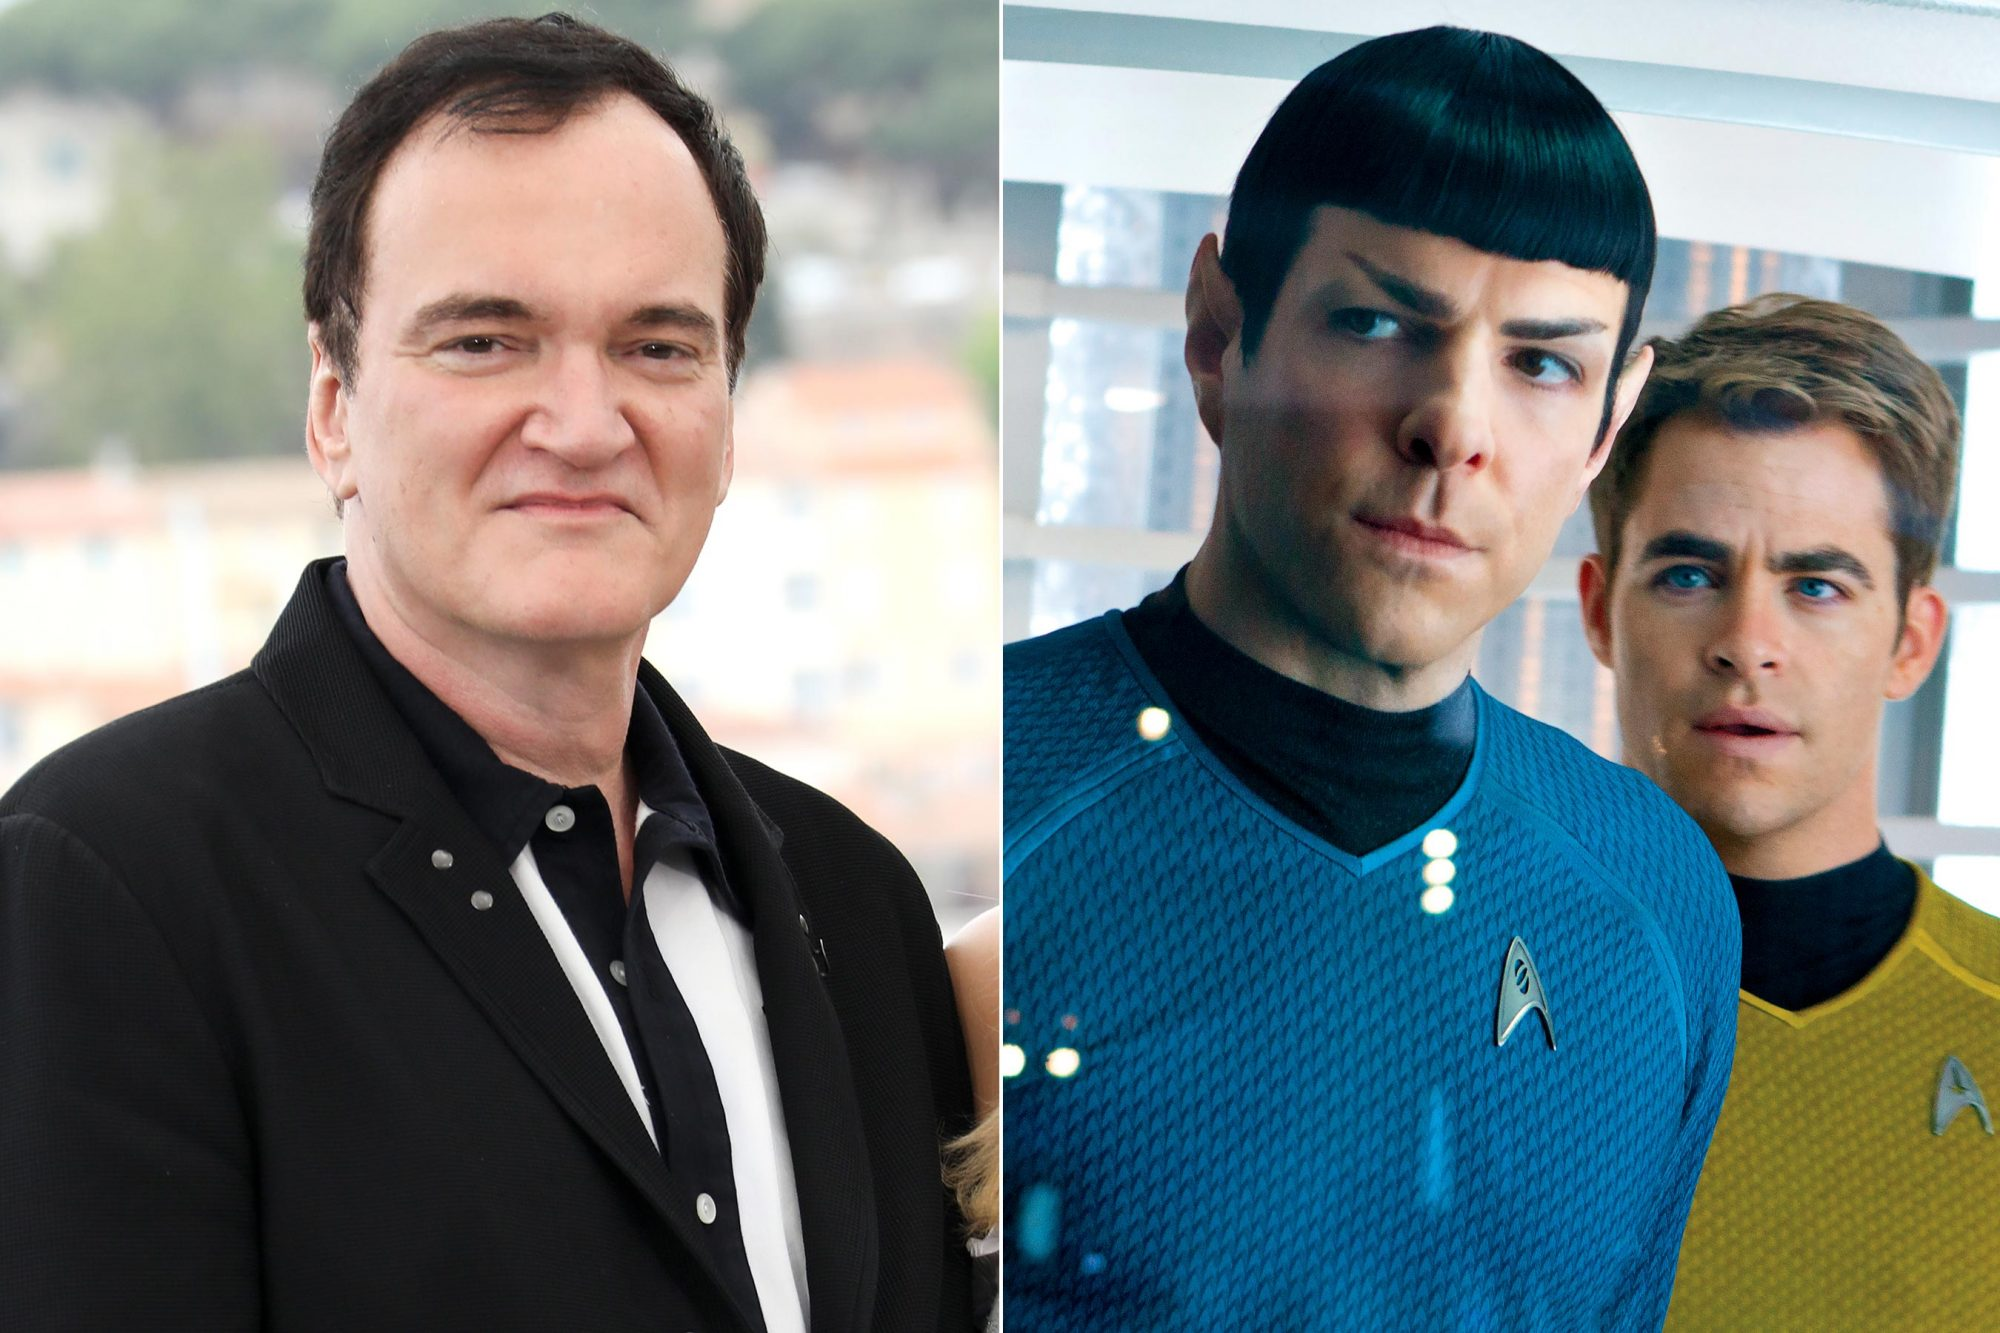 "CANNES, FRANCE - MAY 22: Quentin Tarantino attends the photocall for ""Once Upon A Time In Hollywood"" during the 72nd annual Cannes Film Festival on May 22, 2019 in Cannes, France. (Photo by Tony Barson/FilmMagic) STAR TREK INTO DARKNESS (2013) Zachary Quinto is Spock and Chris Pine Photo credit: Zade Rosenthal/Paramount"